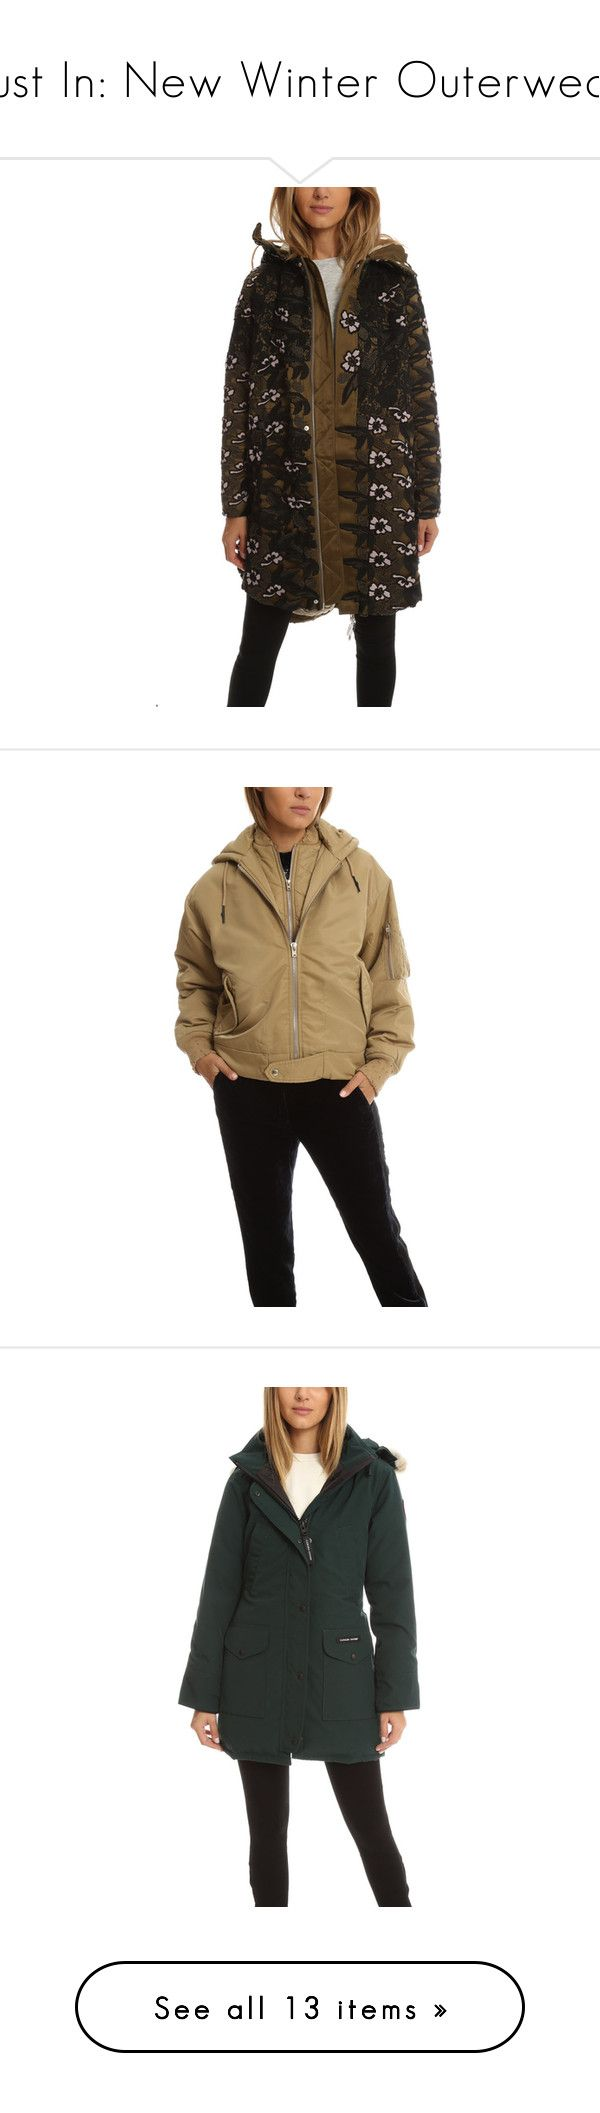 Just In: New Winter Outerwear by blueandcream on Polyvore featuring women's fashion, outerwear, jackets, women, utility jacket, brown utility jacket, brown parka, brown jacket, parka jacket and collar jacket